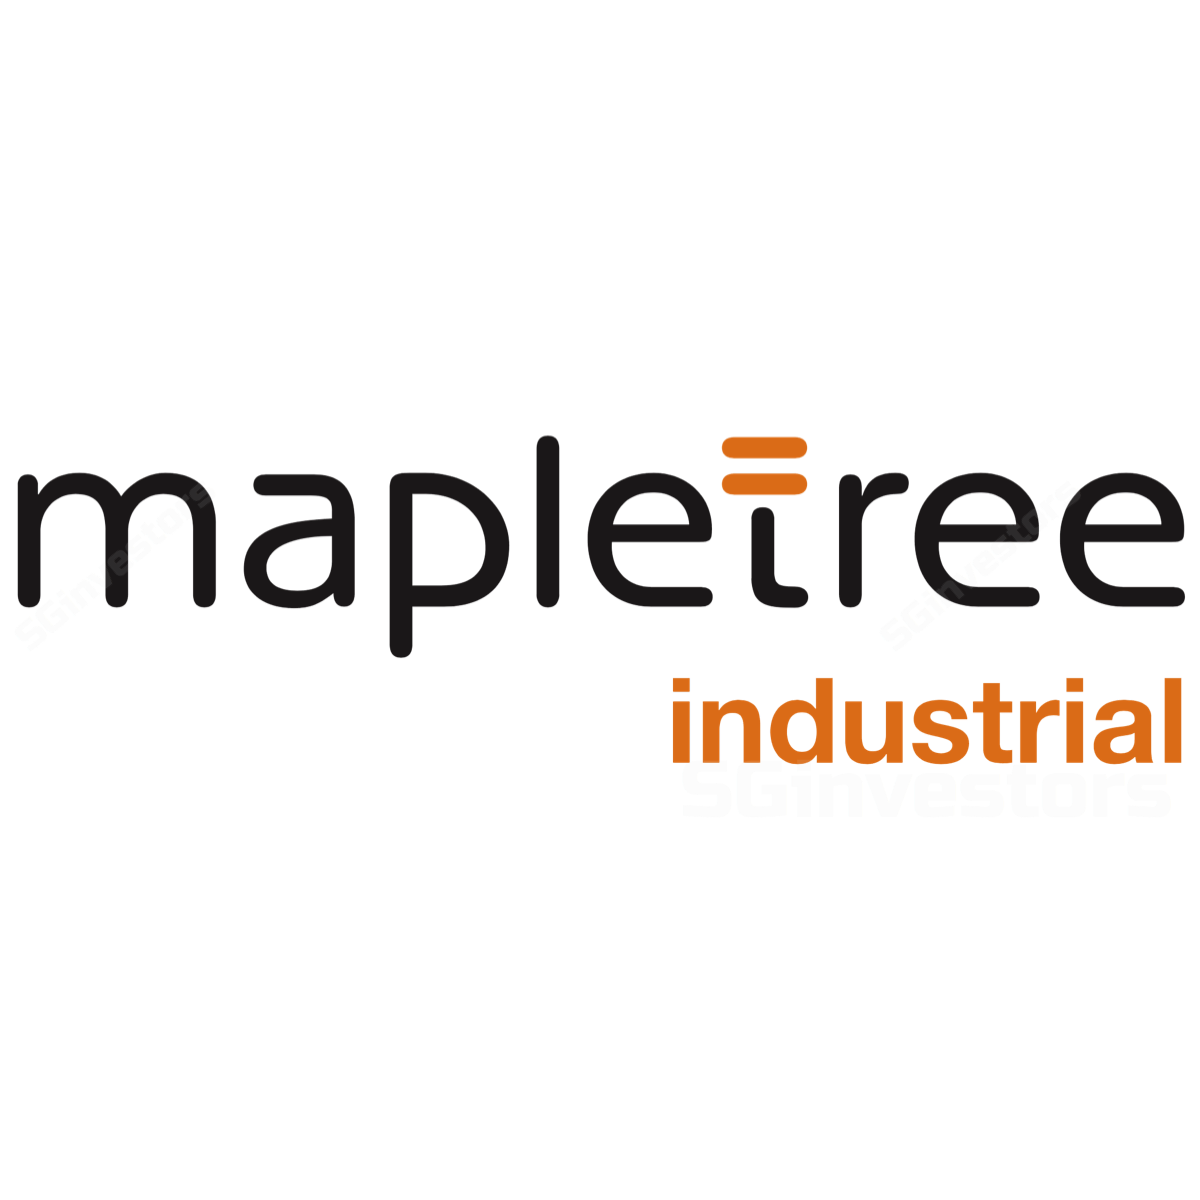 Mapletree Industrial Trust - OCBC Investment 2017-07-26: Downgrade To HOLD On Valuation Grounds